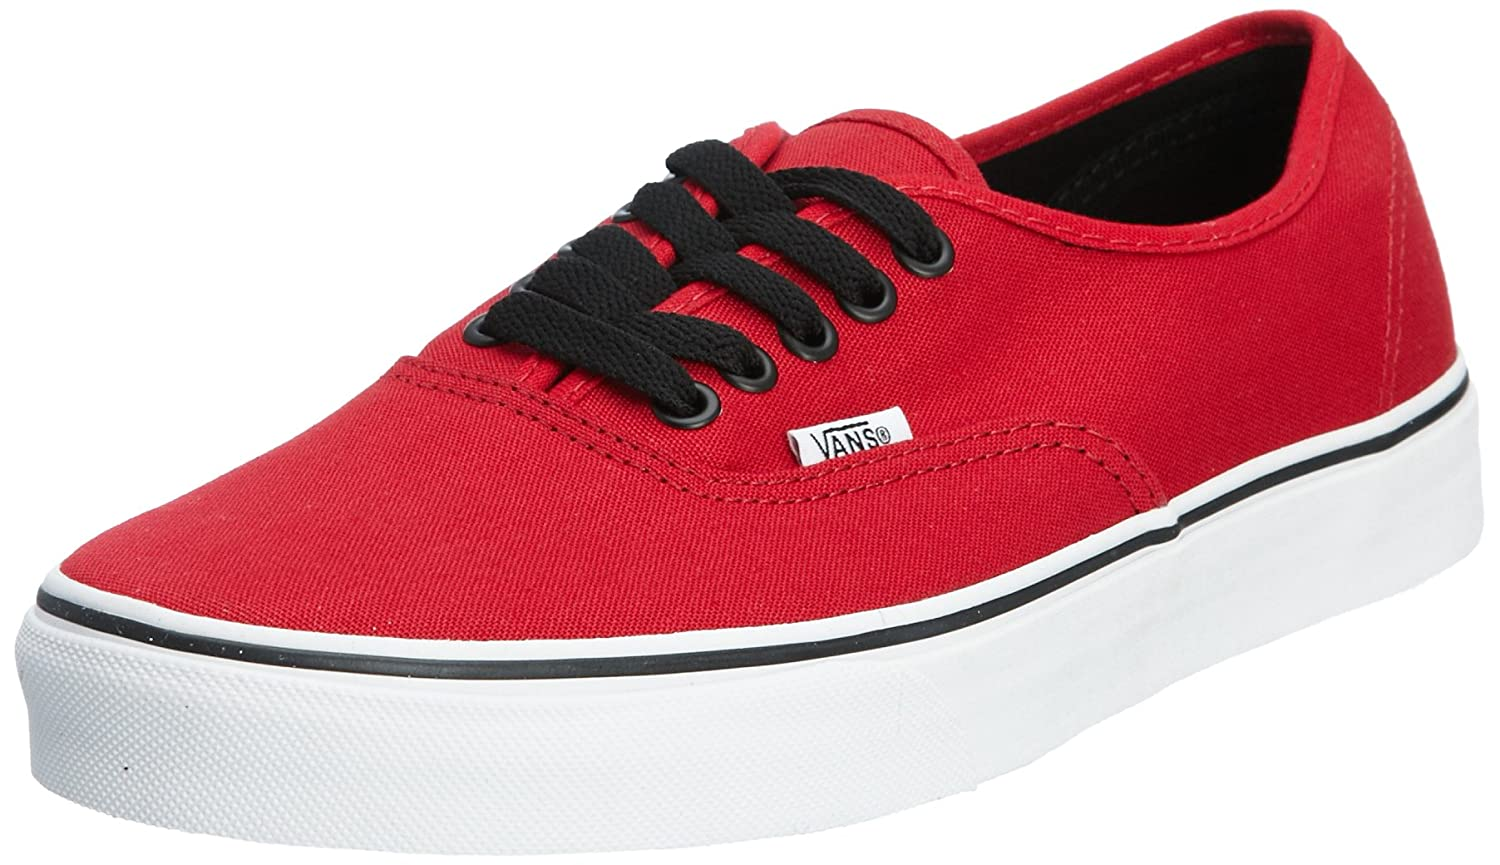 [バンズ] VANS VANS AUTHENTIC VEE3 B00592OHA8 5 B(M) US Women /3.5 D(M) US Men|Chili Pepper/Black Chili Pepper/Black 5 B(M) US Women /3.5 D(M) US Men